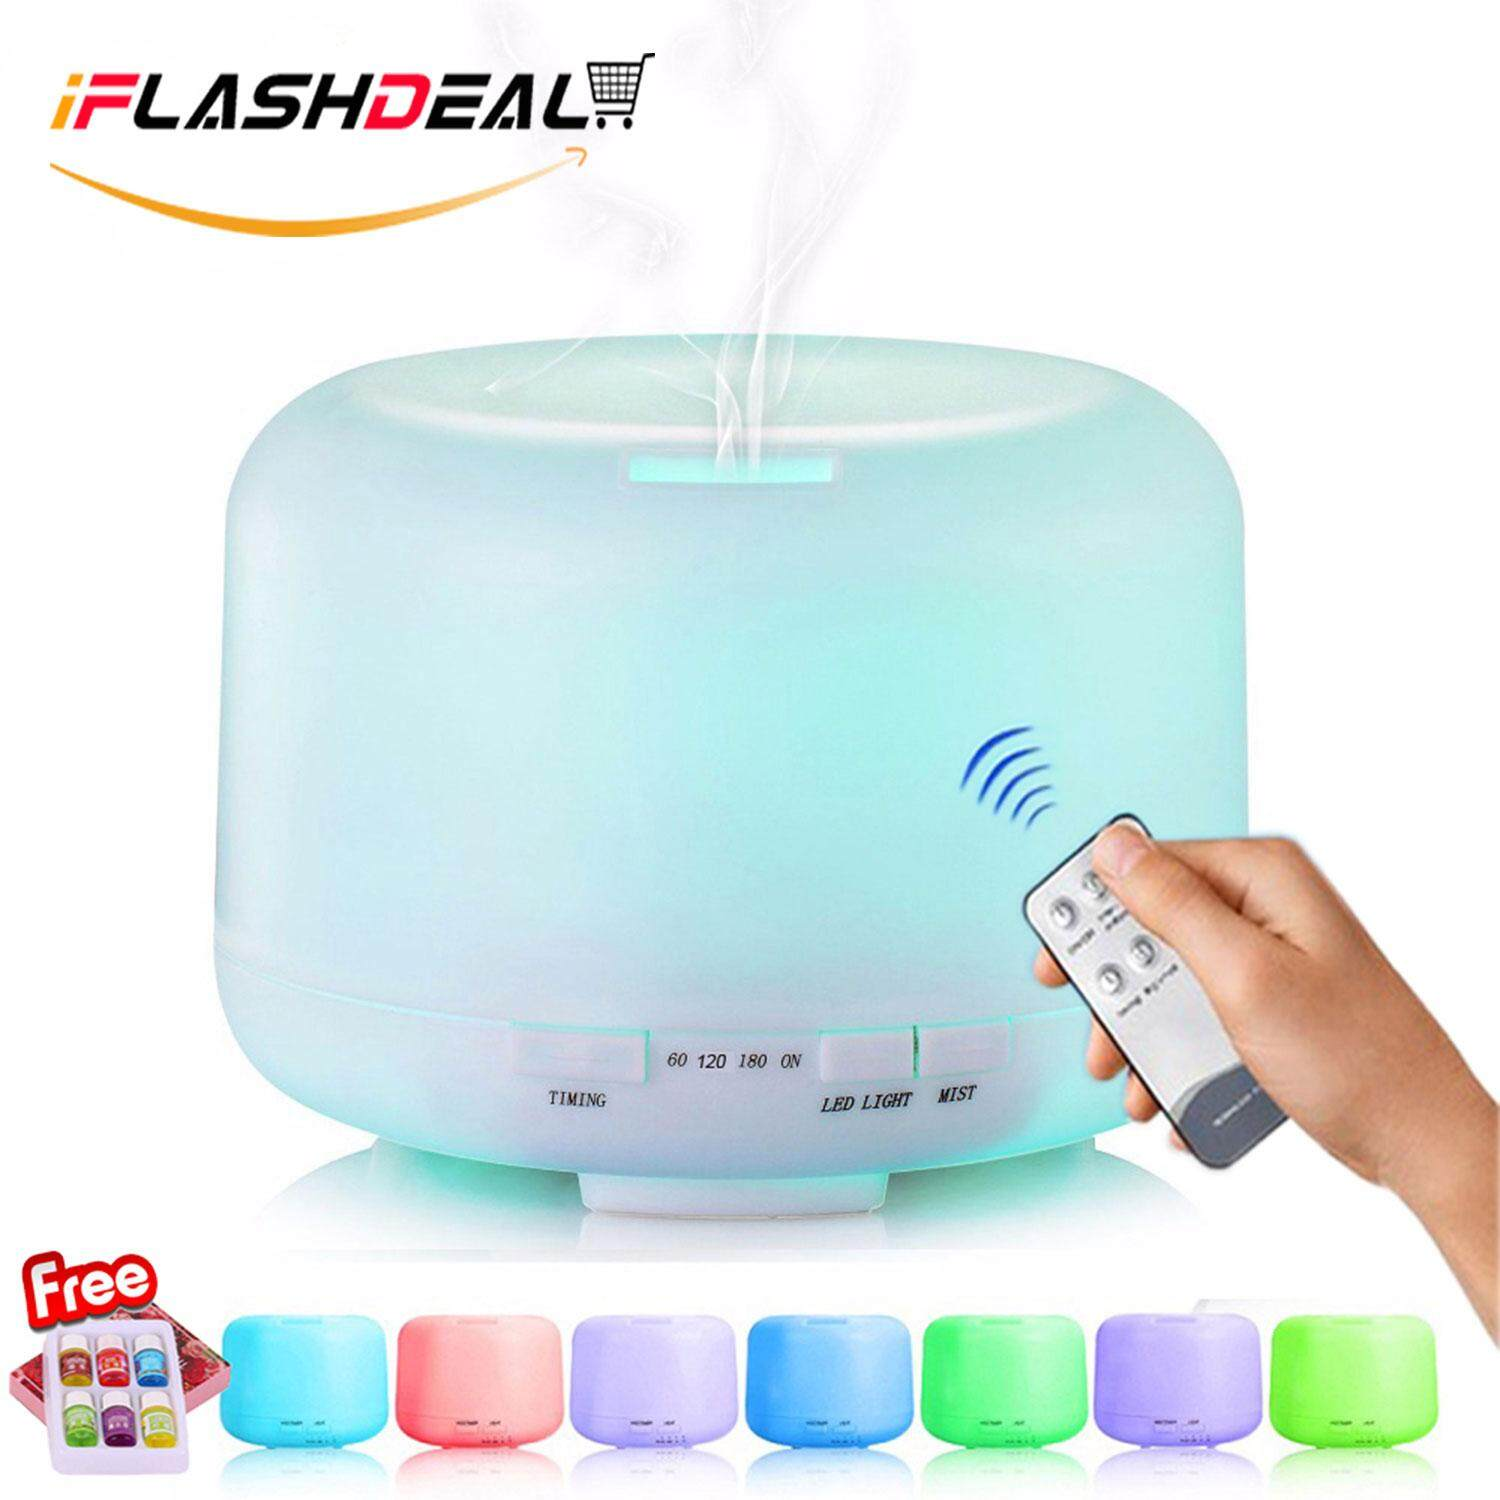 Daftar Produk Dalam Kategori Beli Humidifier Original Remax Daffodil Series Rechargeable Usb Mini Air Purifier Rt A300 Iflashdeal Pembersih Udara Ultrasonic Aroma Diffuser Humidifiers Aromatherapy Essential Oil Cool Mist Quite Design For Home Office